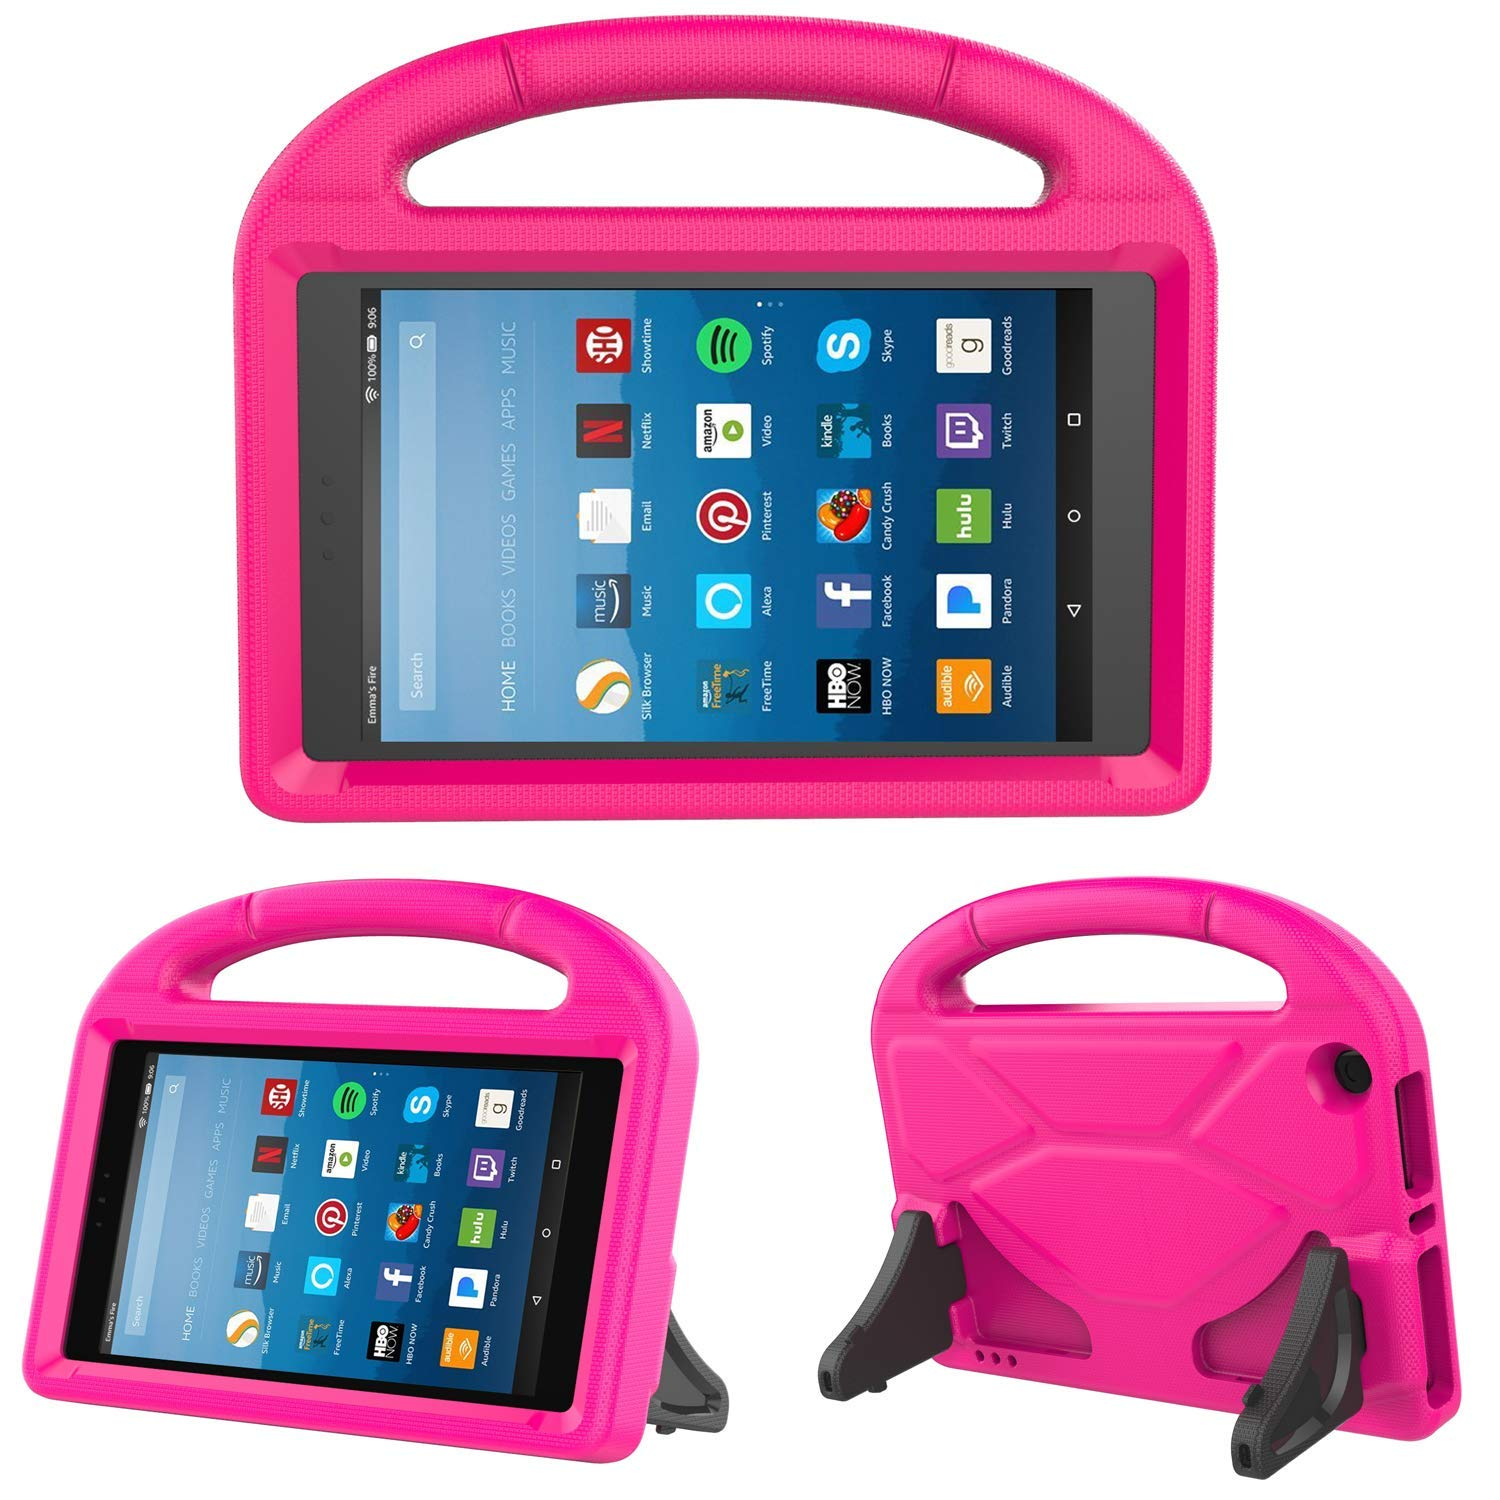 All-New Fire HD 8-inch 2018 2017 2016 Case, Allytech Light Weight Shock Proof Handle Kid Proof Cover Child Stand Case for Amazon Kindle Fire HD 8-inch Tablet (8th/ 7th/ 6th Generation) - Rose